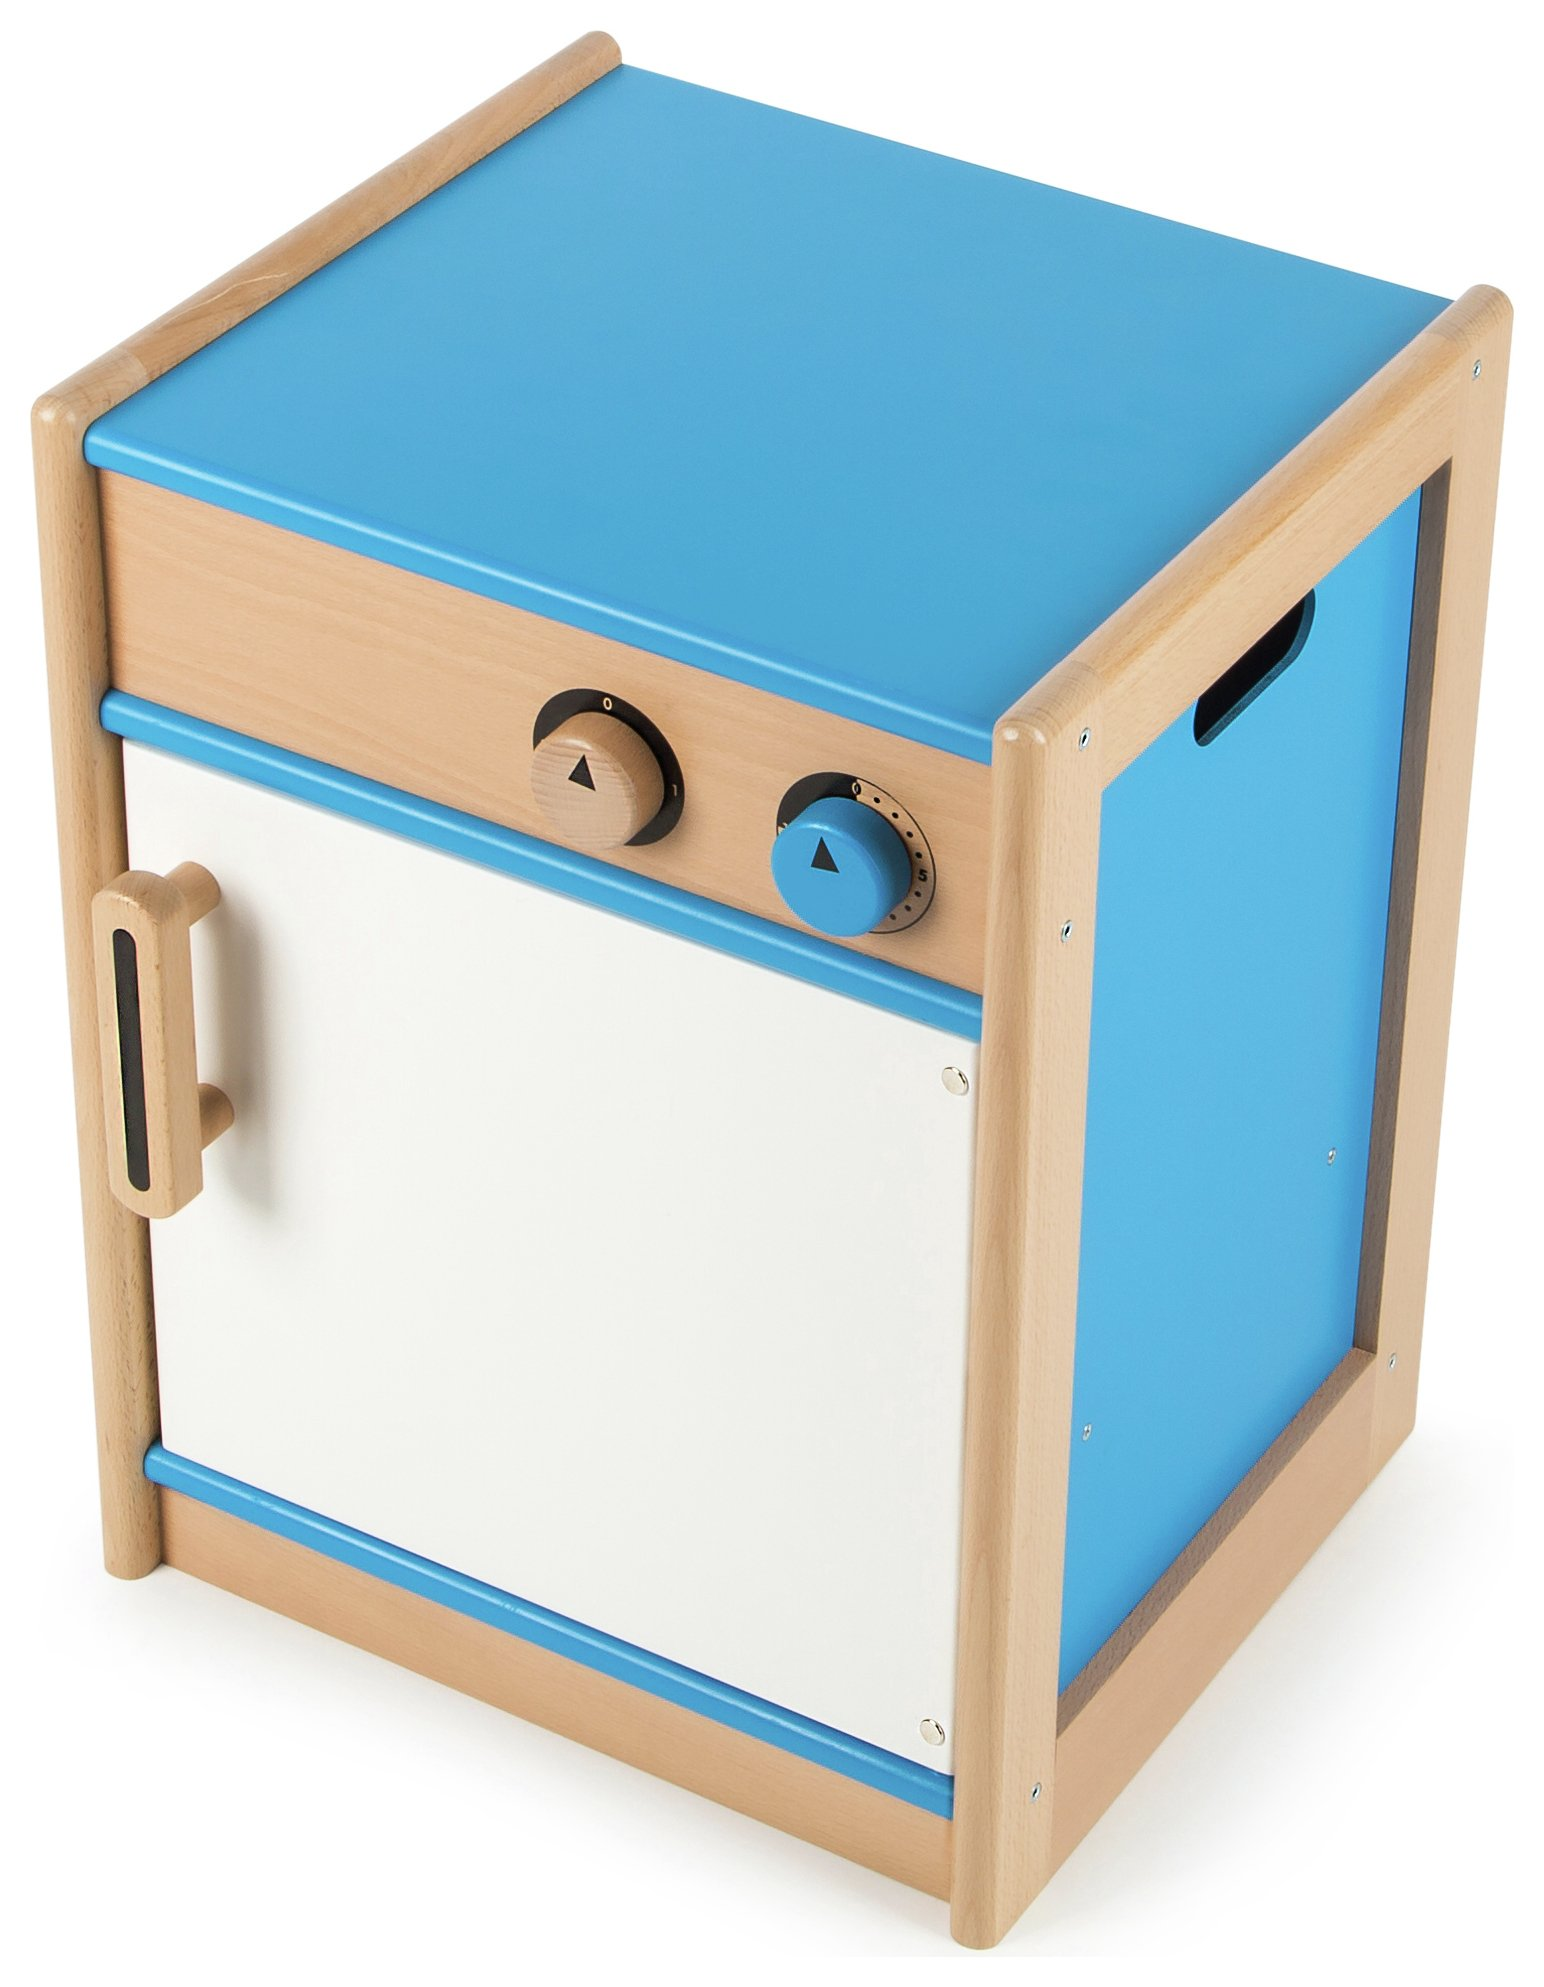 Image of Tidlo Toy Dishwasher.